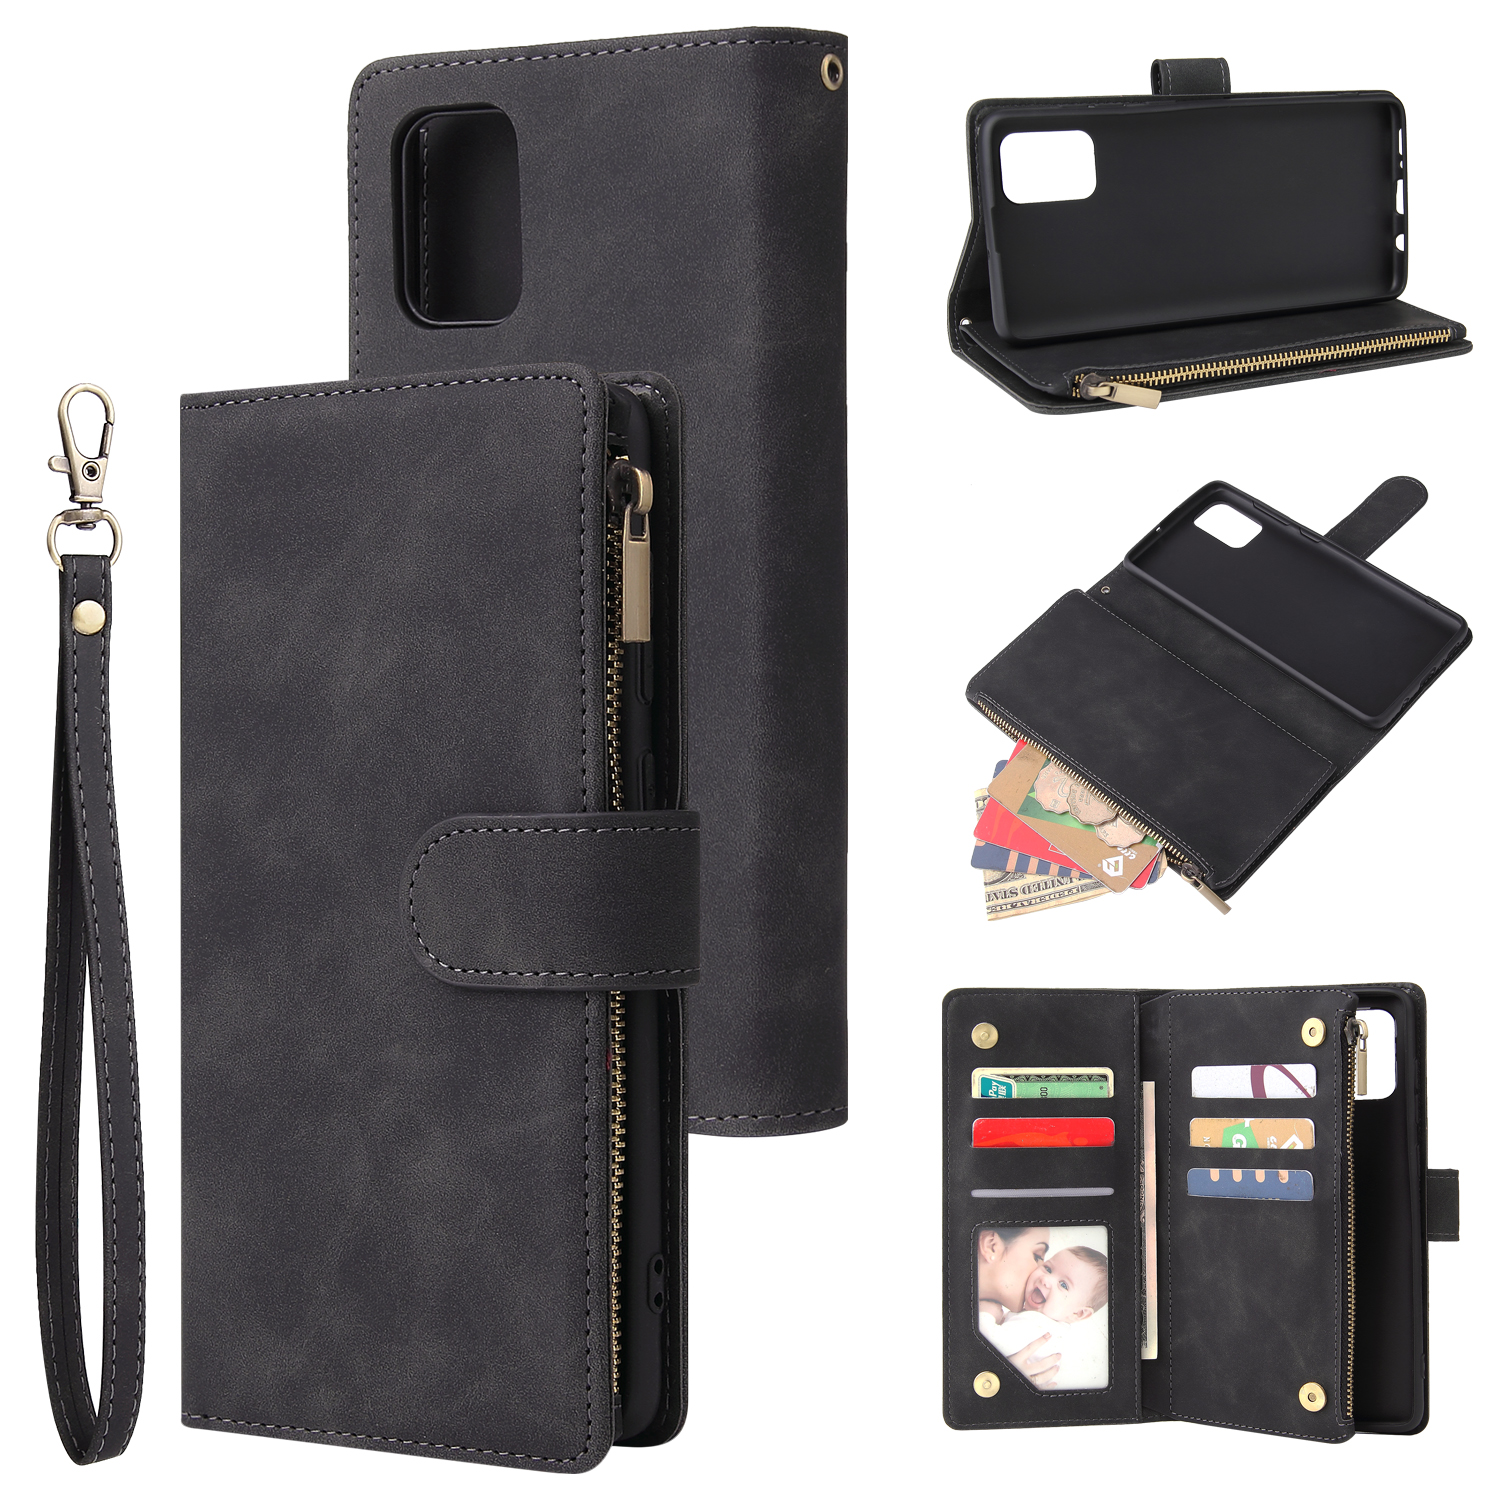 For Samsung A71 Case Smartphone Shell Precise Cutouts Zipper Closure Wallet Design Overall Protection Phone Cover  Black